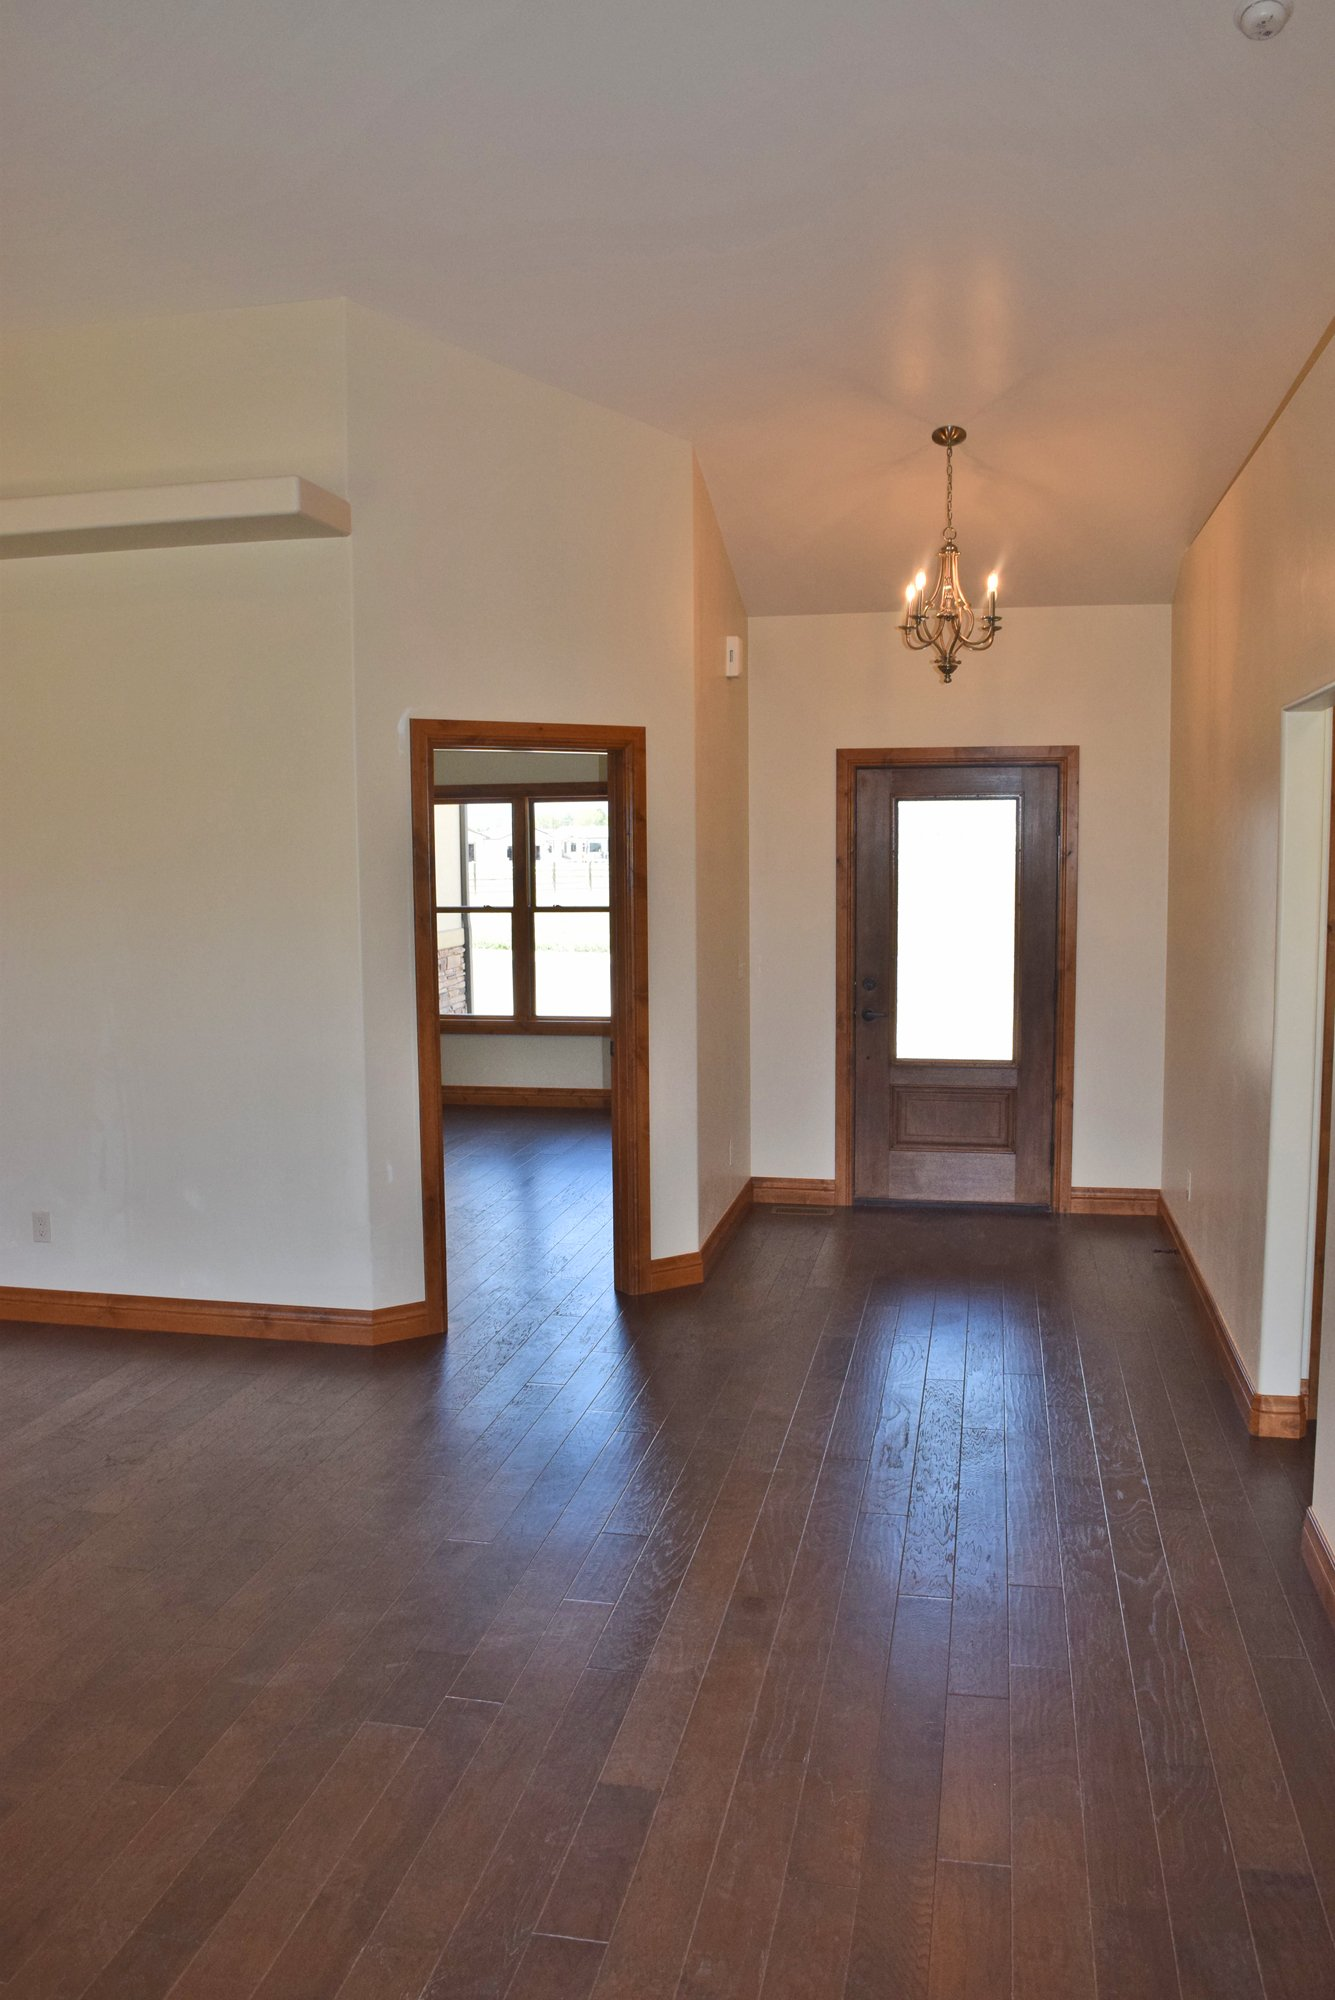 Entry Way with Hardwood Flooring - Lot-1935-Sleeping-Bear-Rd - Atha Team Residential Real Estate